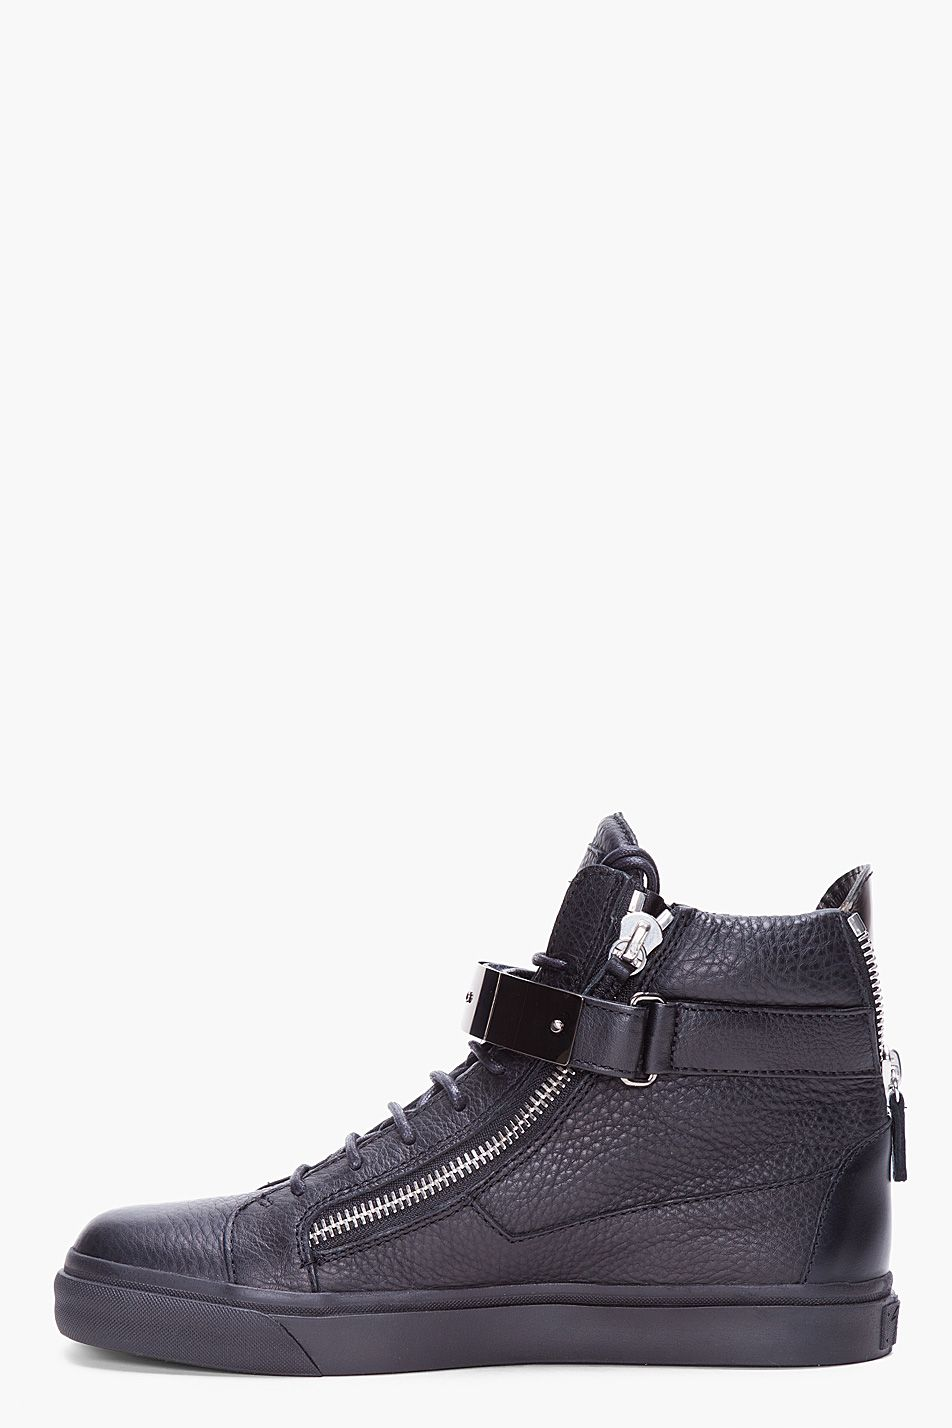 GIUSEPPE ZANOTTI // Black Velcro Bar Sneakers High-top pebbled leather  sneakers in black